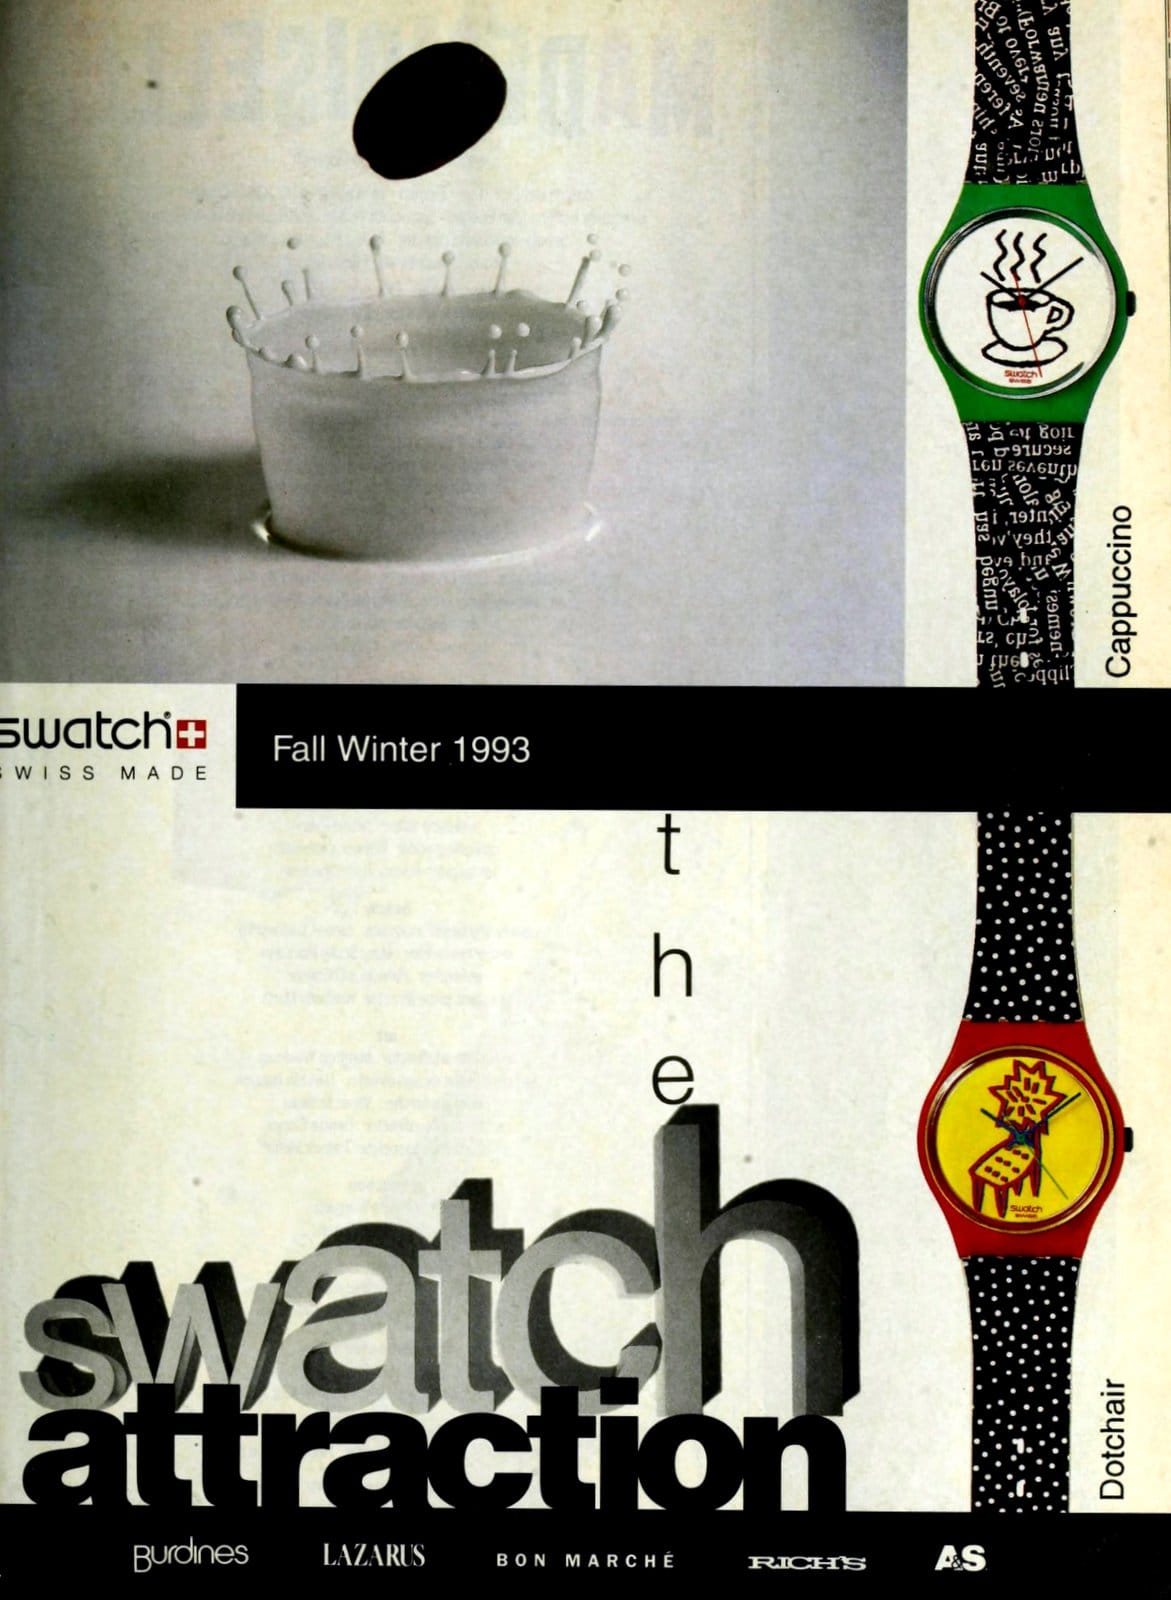 Vintage 1990s Swatch ad (1993)